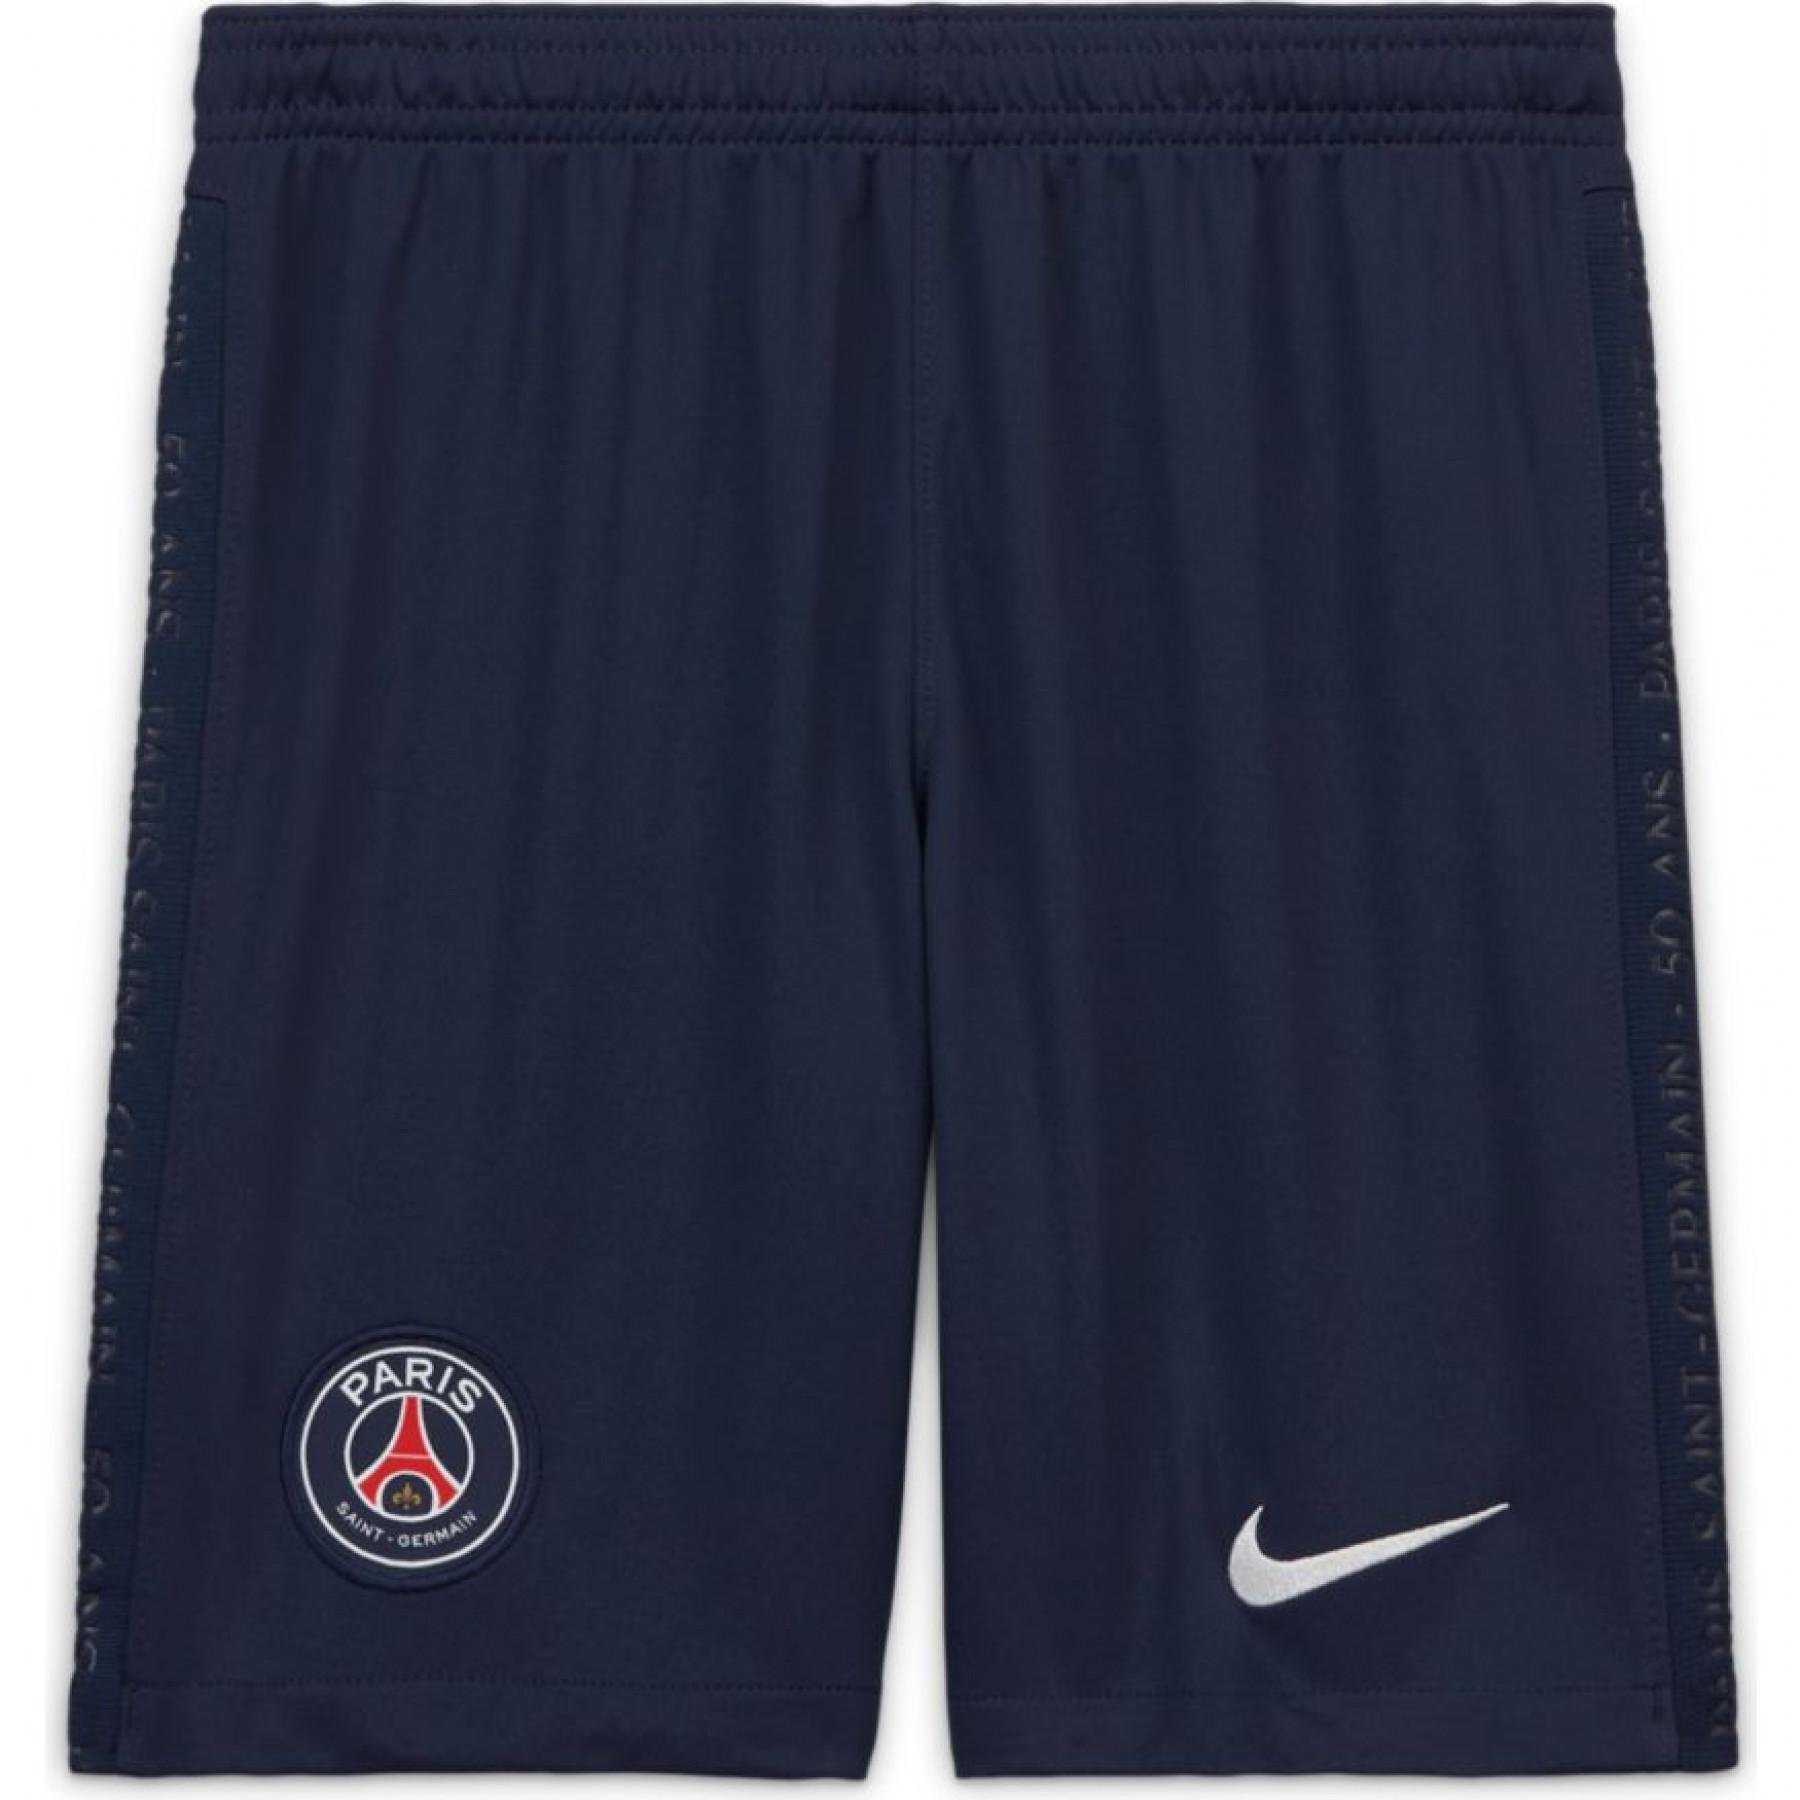 Shorts home junior PSG Vapor 2020/21